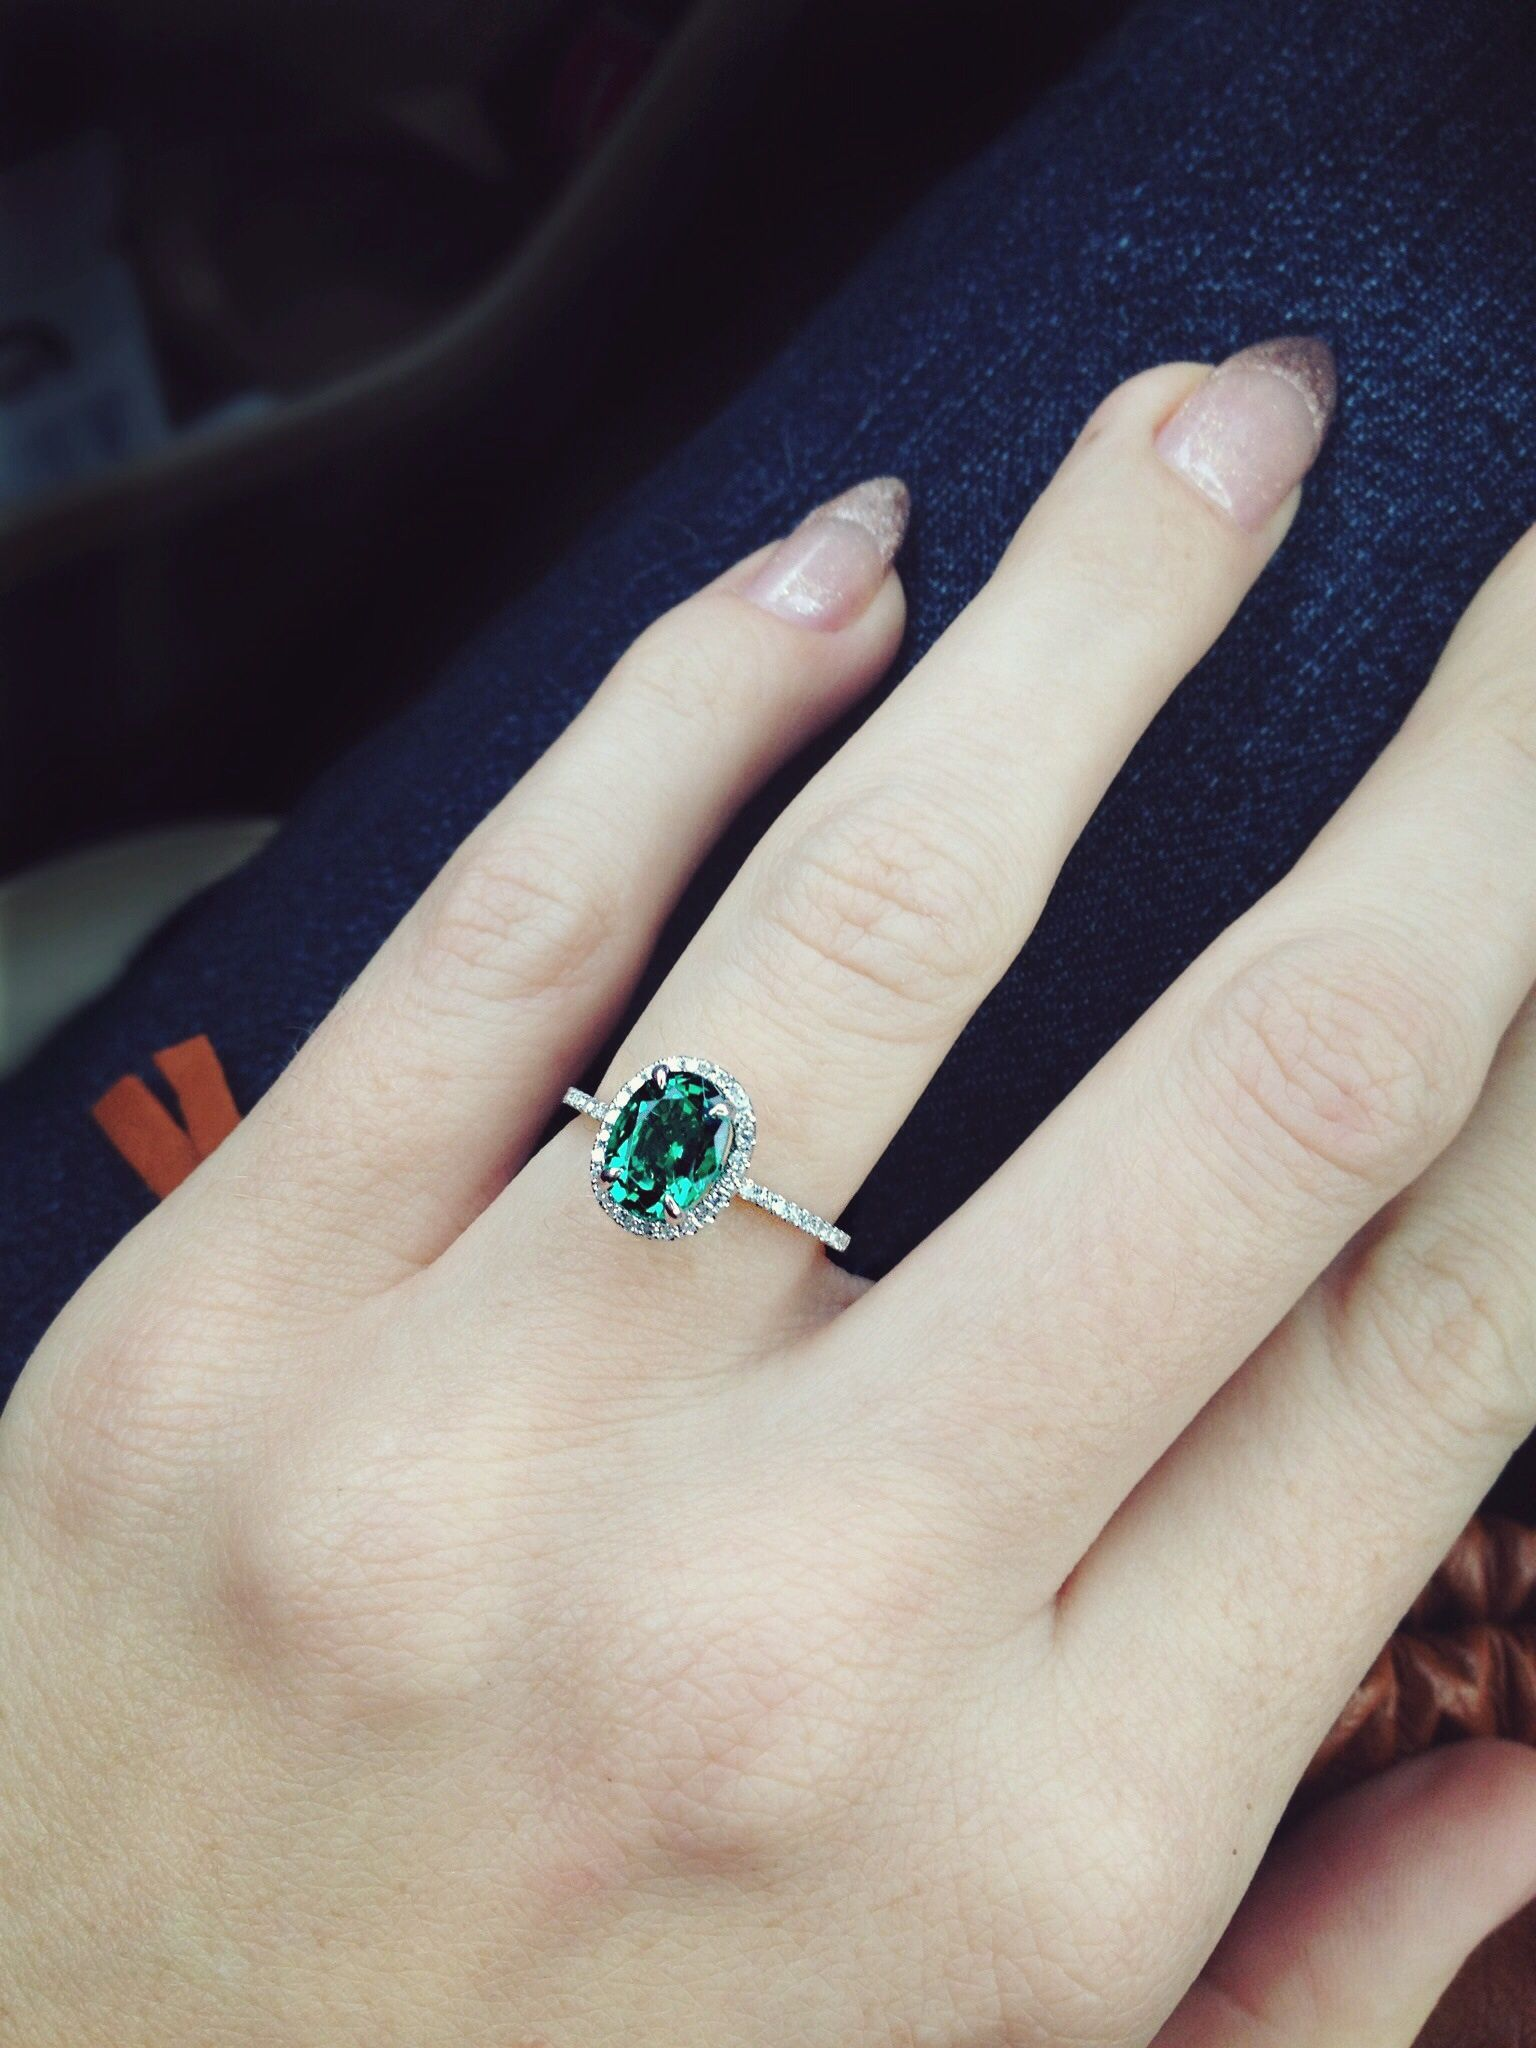 Show me your Emeralds! (the gemstone, that is ...